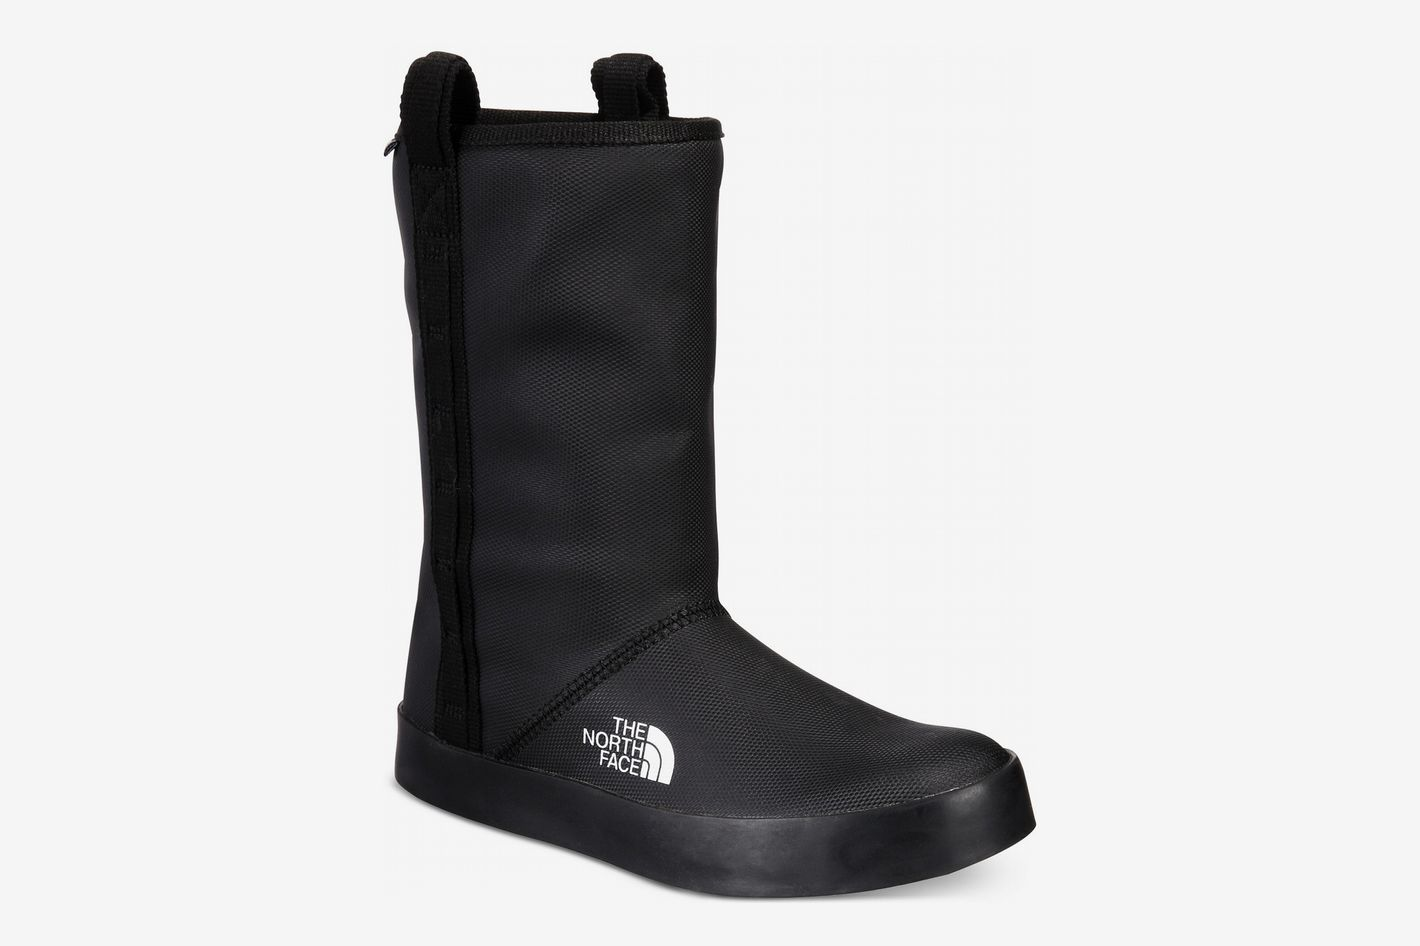 The North Face Base Camp Women's Shorty Rain Boots